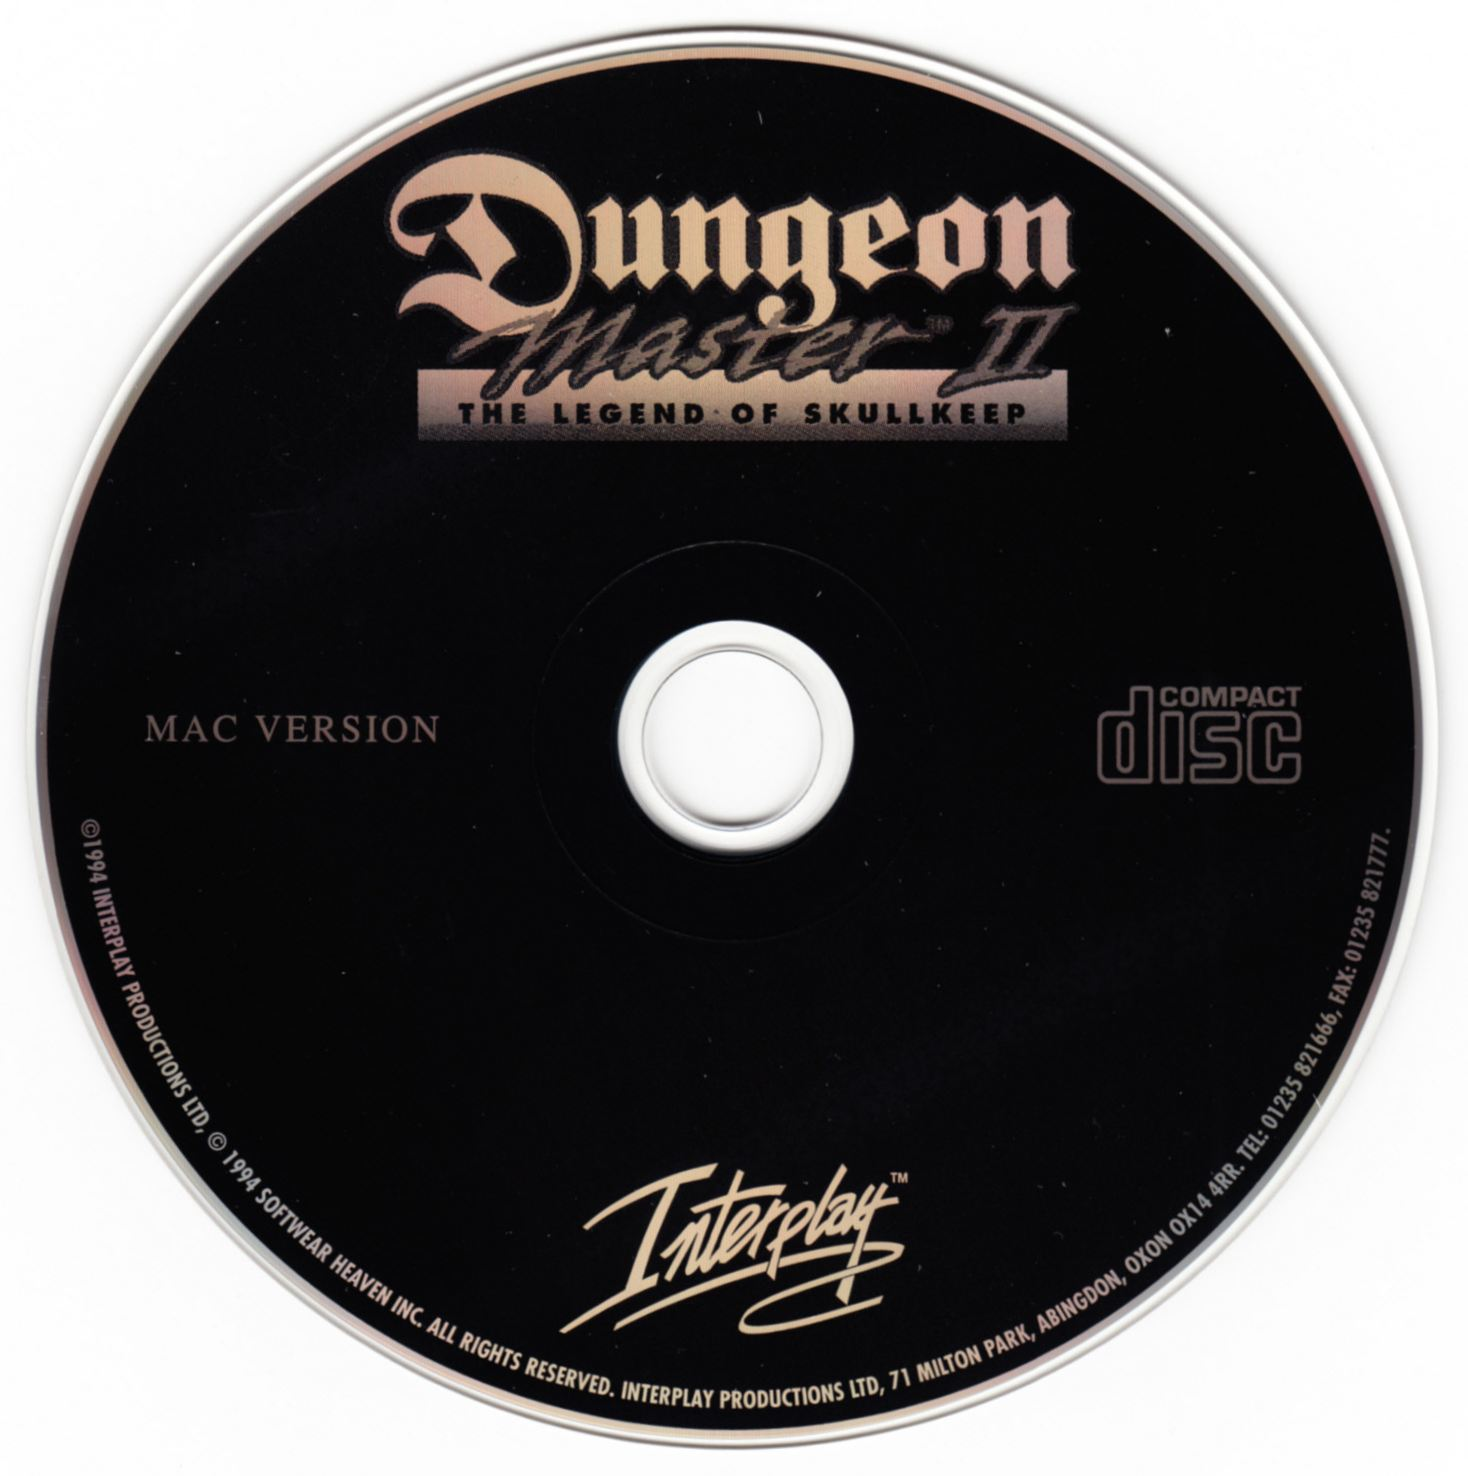 Game - Dungeon Master II - UK - Macintosh - Compact Disc - Front - Scan